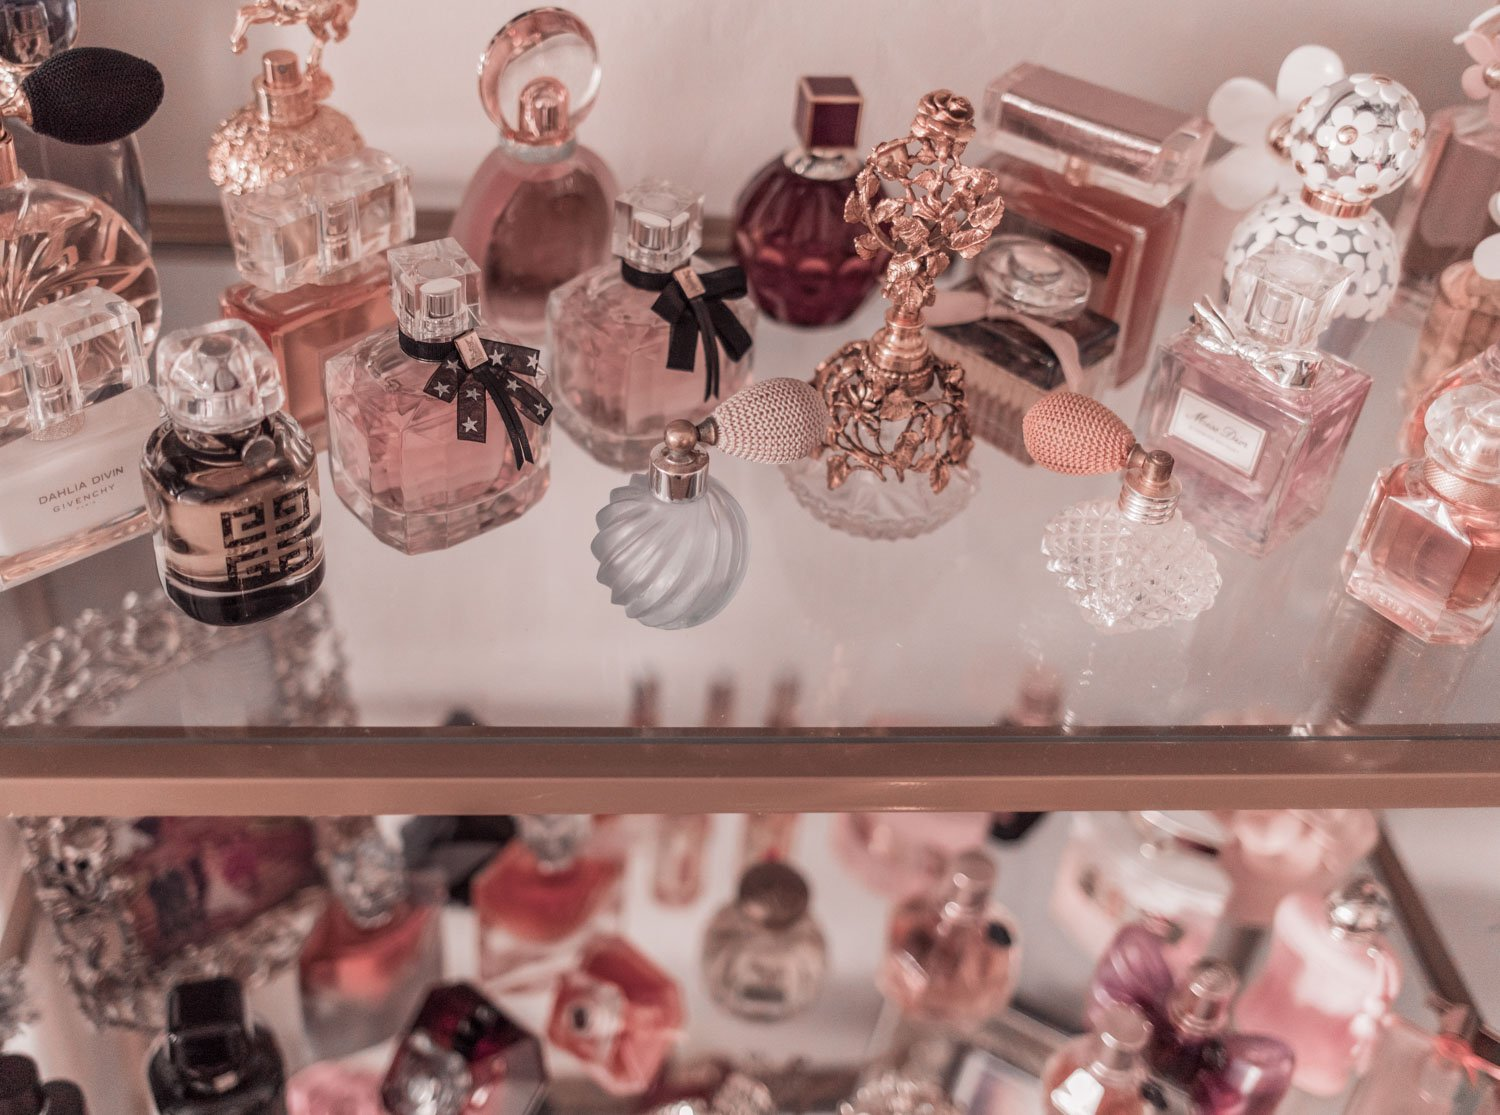 Feminine fashion blogger Elizabeth Hugen of Lizzie in Lace shares the best feminine perfumes and her girly fragrance collection